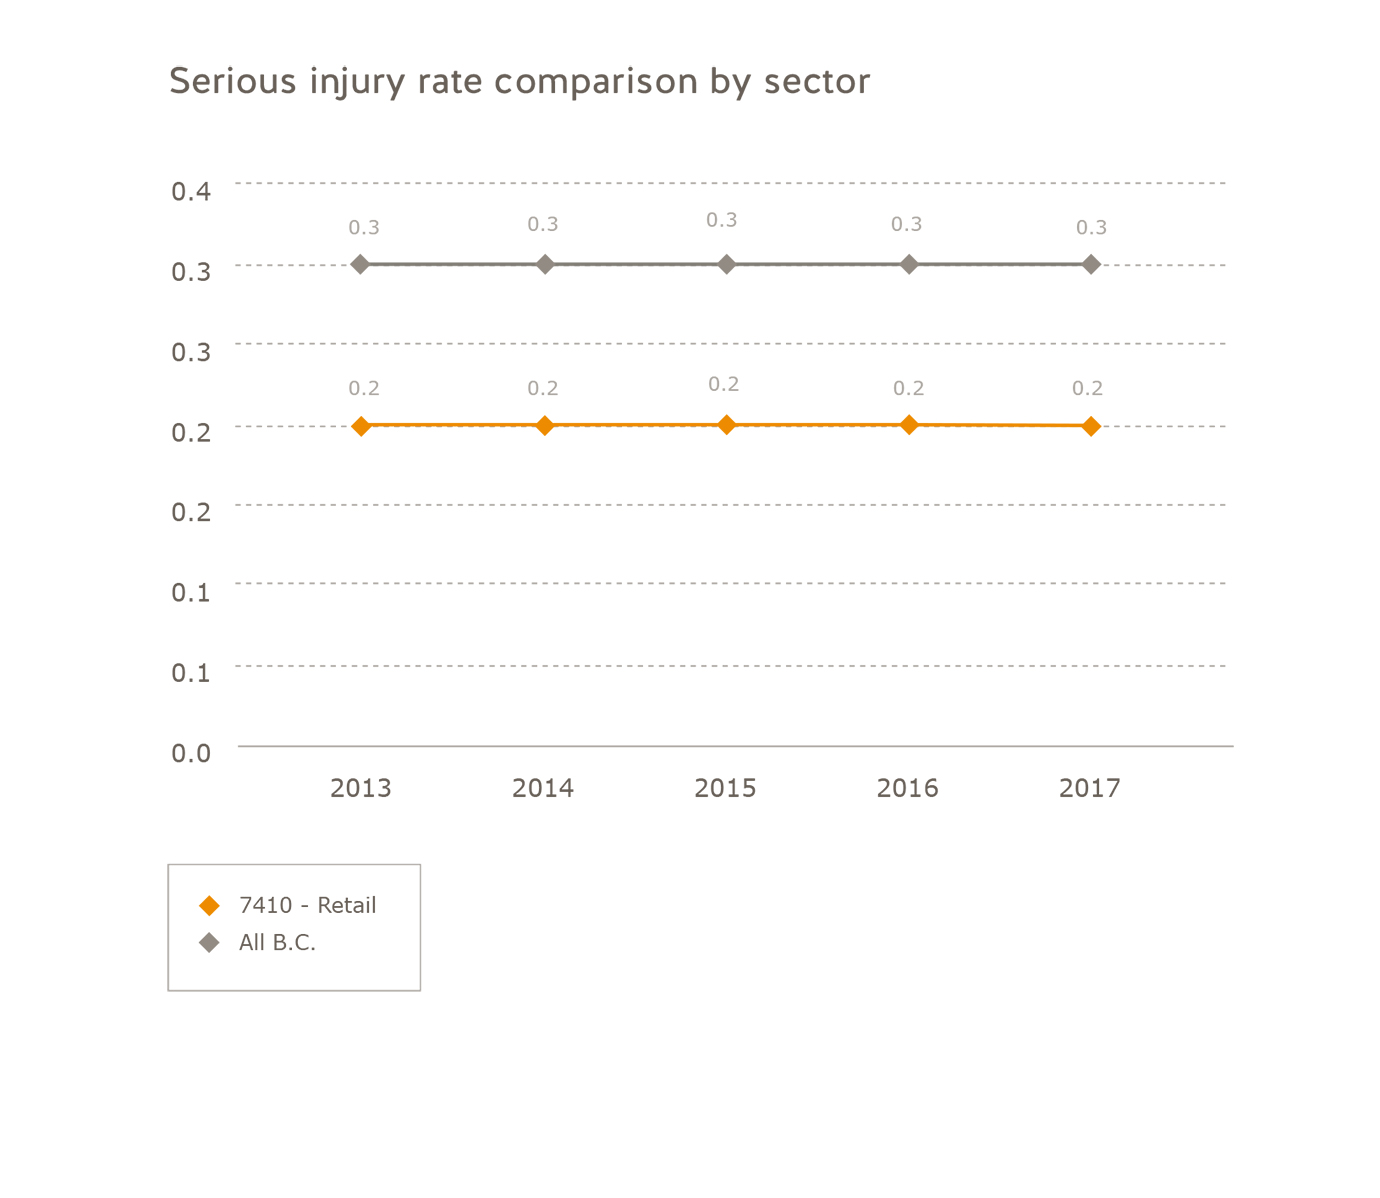 Serious injury rate comparison retail subsector 2013 to 2017. Retail: 2013 = 0.2, 2014 = 0.2, 2015 = 0.2, 2016 = 0.2, 2017 = 0.2. All of B.C.: 2013 = 0.3, 2014 = 0.3, 2015 = 0.3, 2016 = 0.3, 2017 = 0.3.